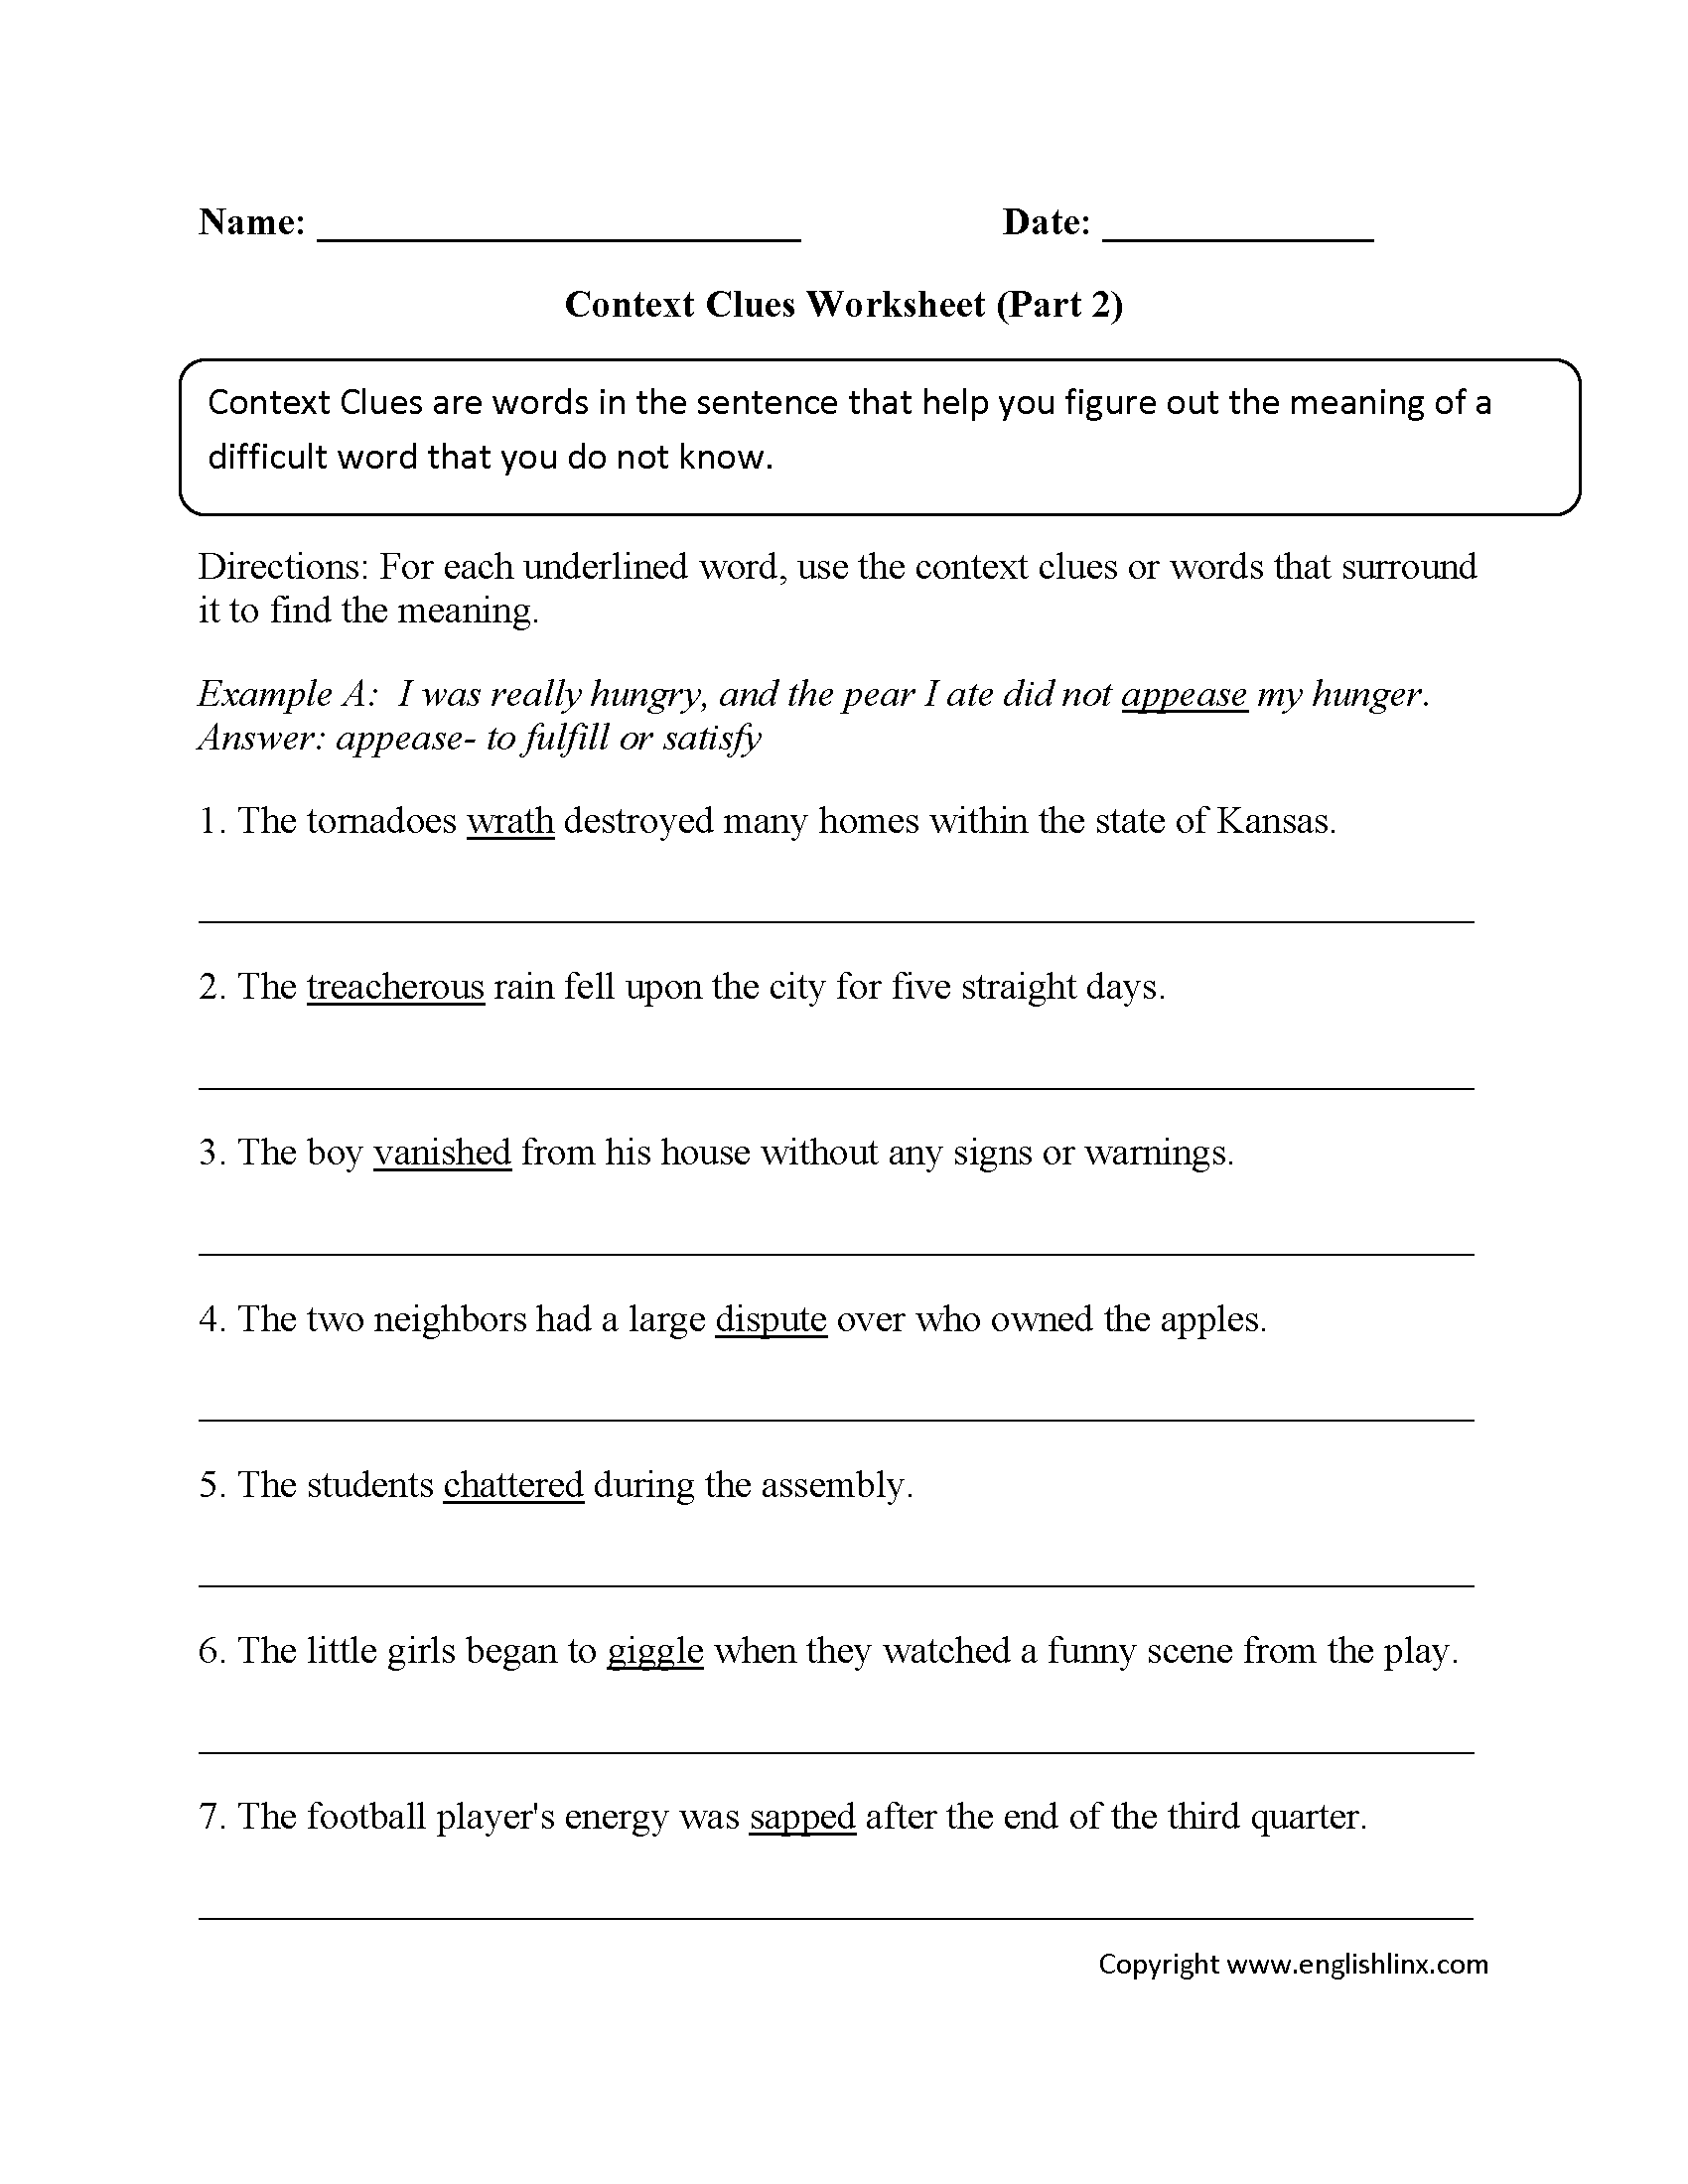 Worksheets Using Context Clues Worksheets context clues worksheet writing part 2 intermediate devin e1f4bf50f45131842d8ed6b3594db5b1 png